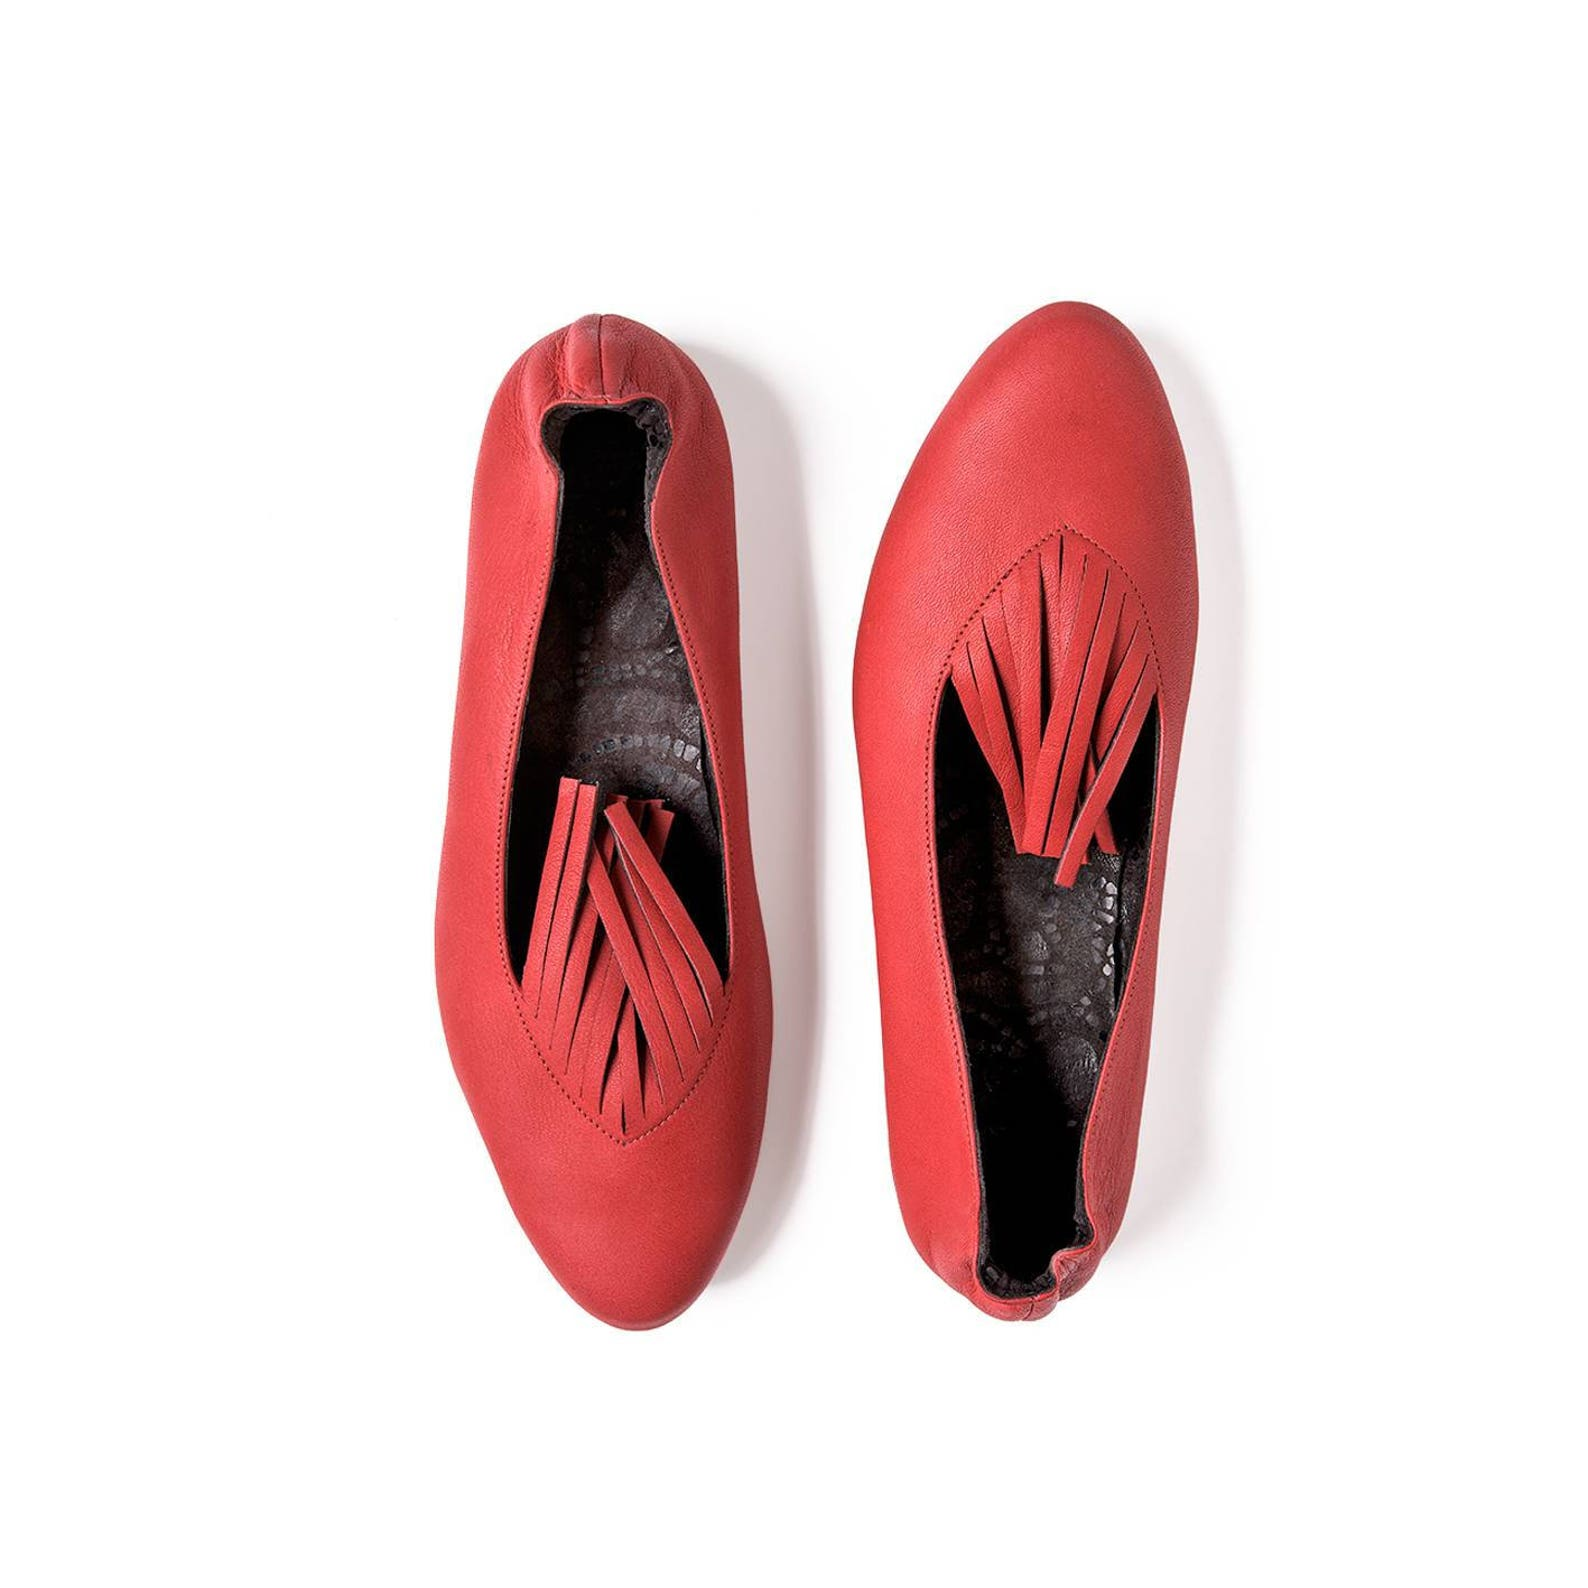 red ballet flats leather handmade, handmade high quality leather shoes, red shoes, women red shoes, red flat shoes, gift for her